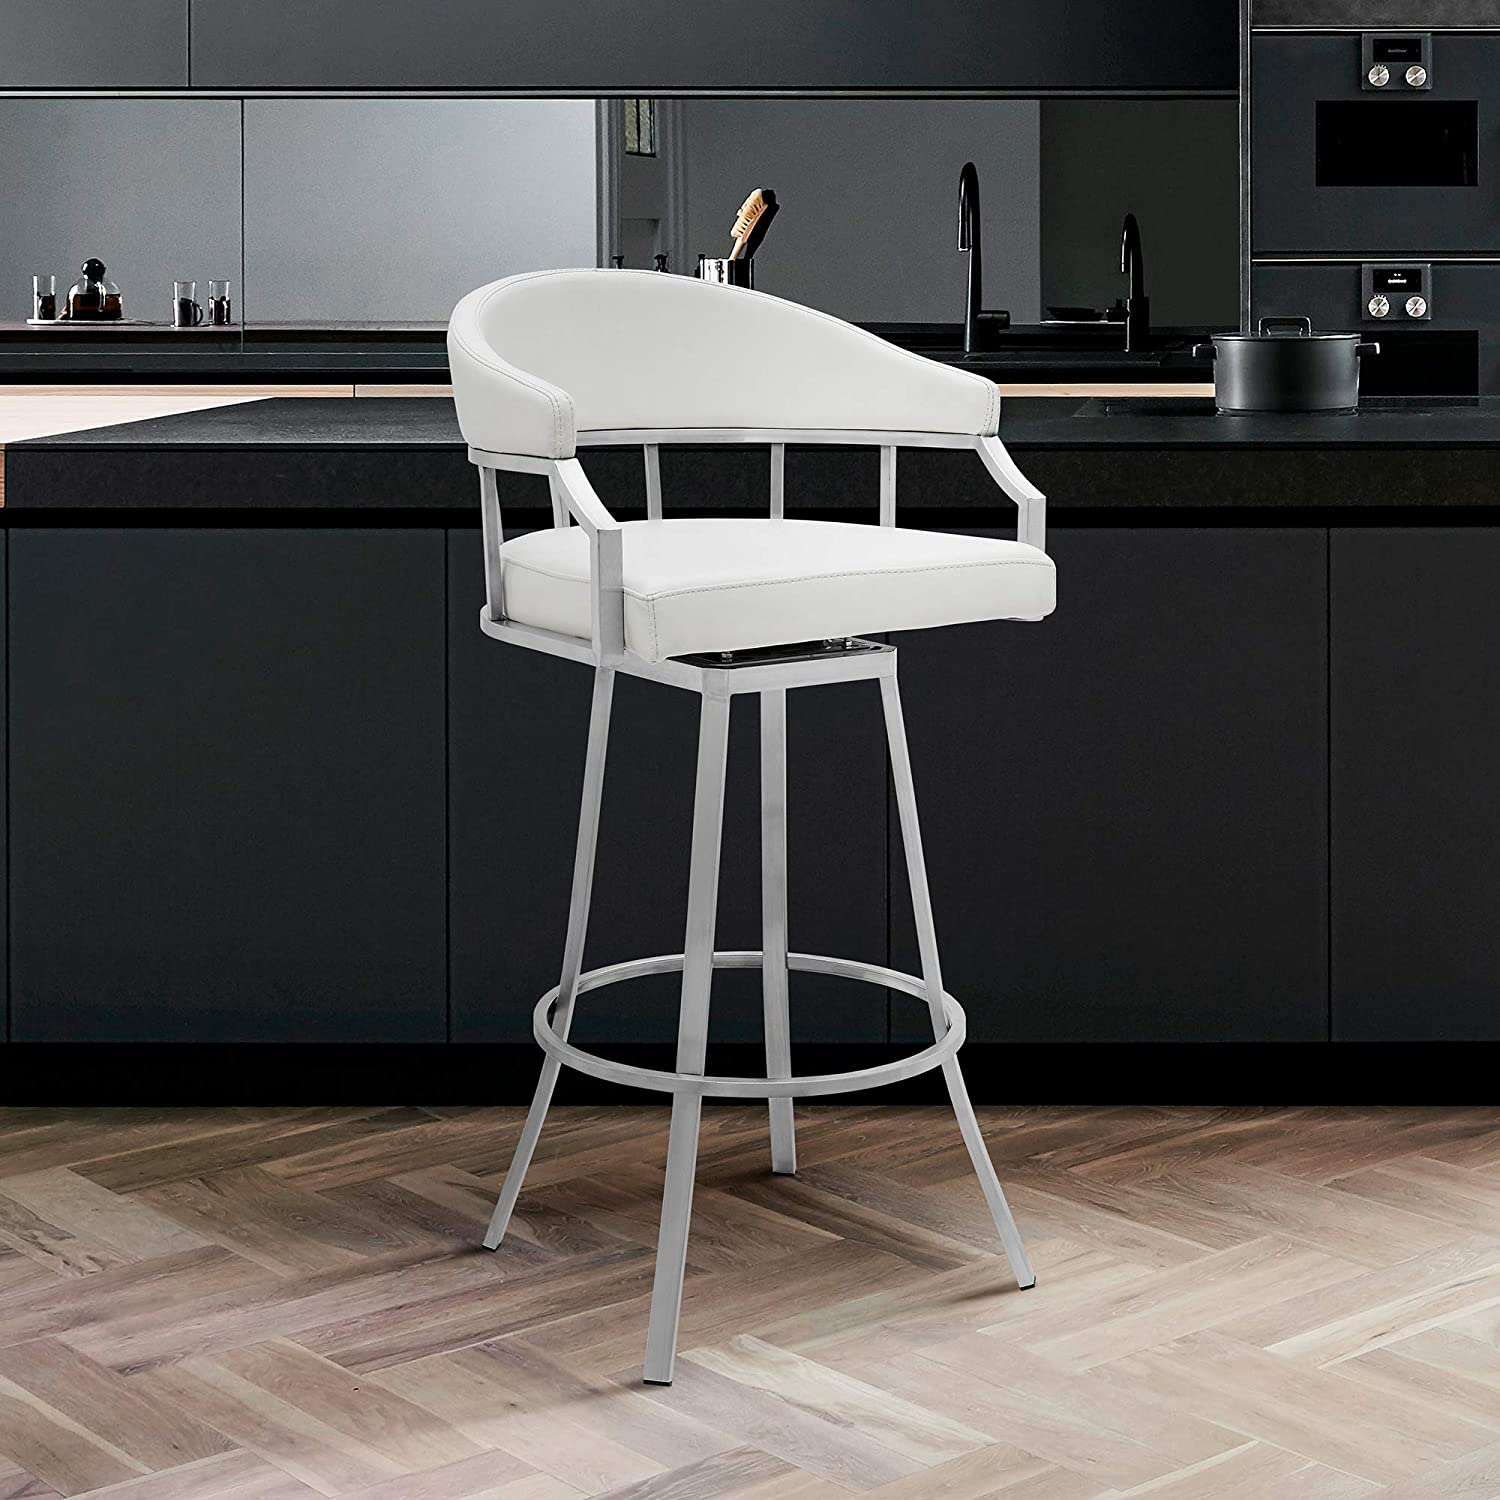 Buy Valerie Swivel Modern Faux Leather Bar and Counter Stool in ...